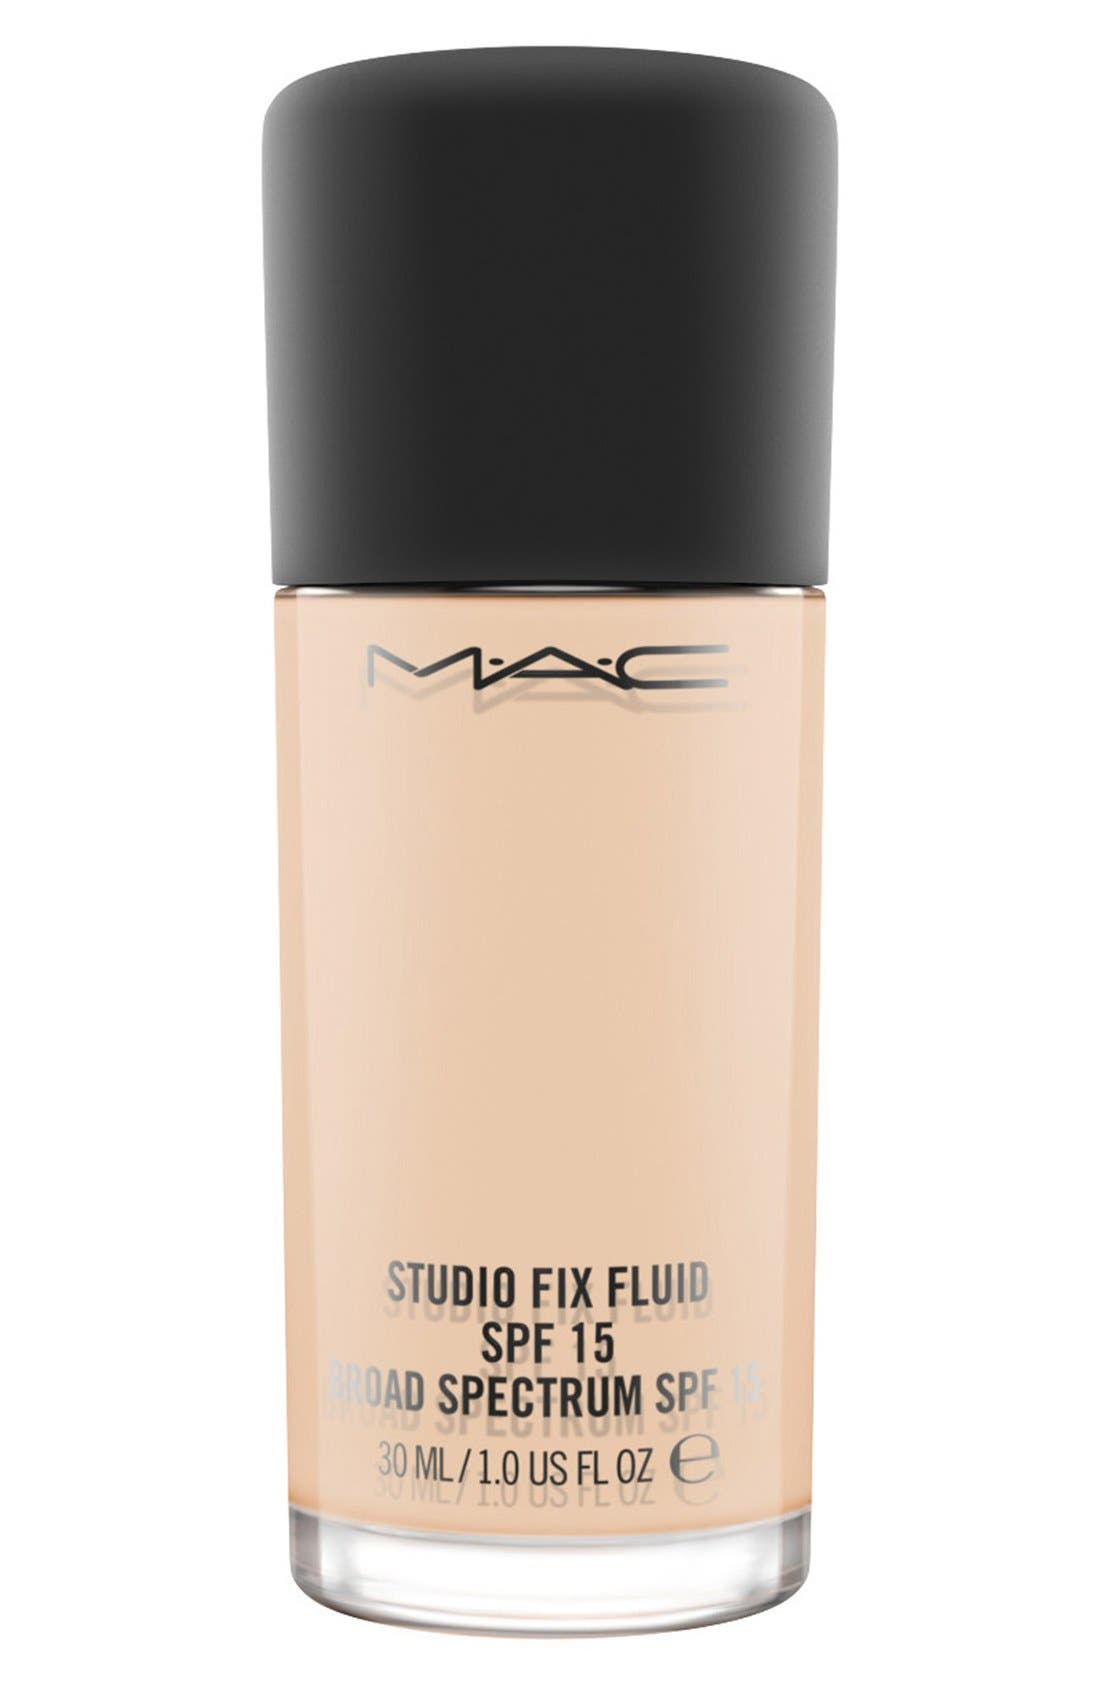 What it is: A modern shine-controlling foundation that provides a natural matte finish and medium-to-full buildable coverage. Who it\\\'s for: All skin types, though especially ideal for those with oily skin. What it does: This foundation delivers stay-true color that lasts for 24 hours, contains broad-spectrum SPF 15 protection and controls oil and shine for up to six hours. It applies, builds and blends easily and evenly while controlling shine